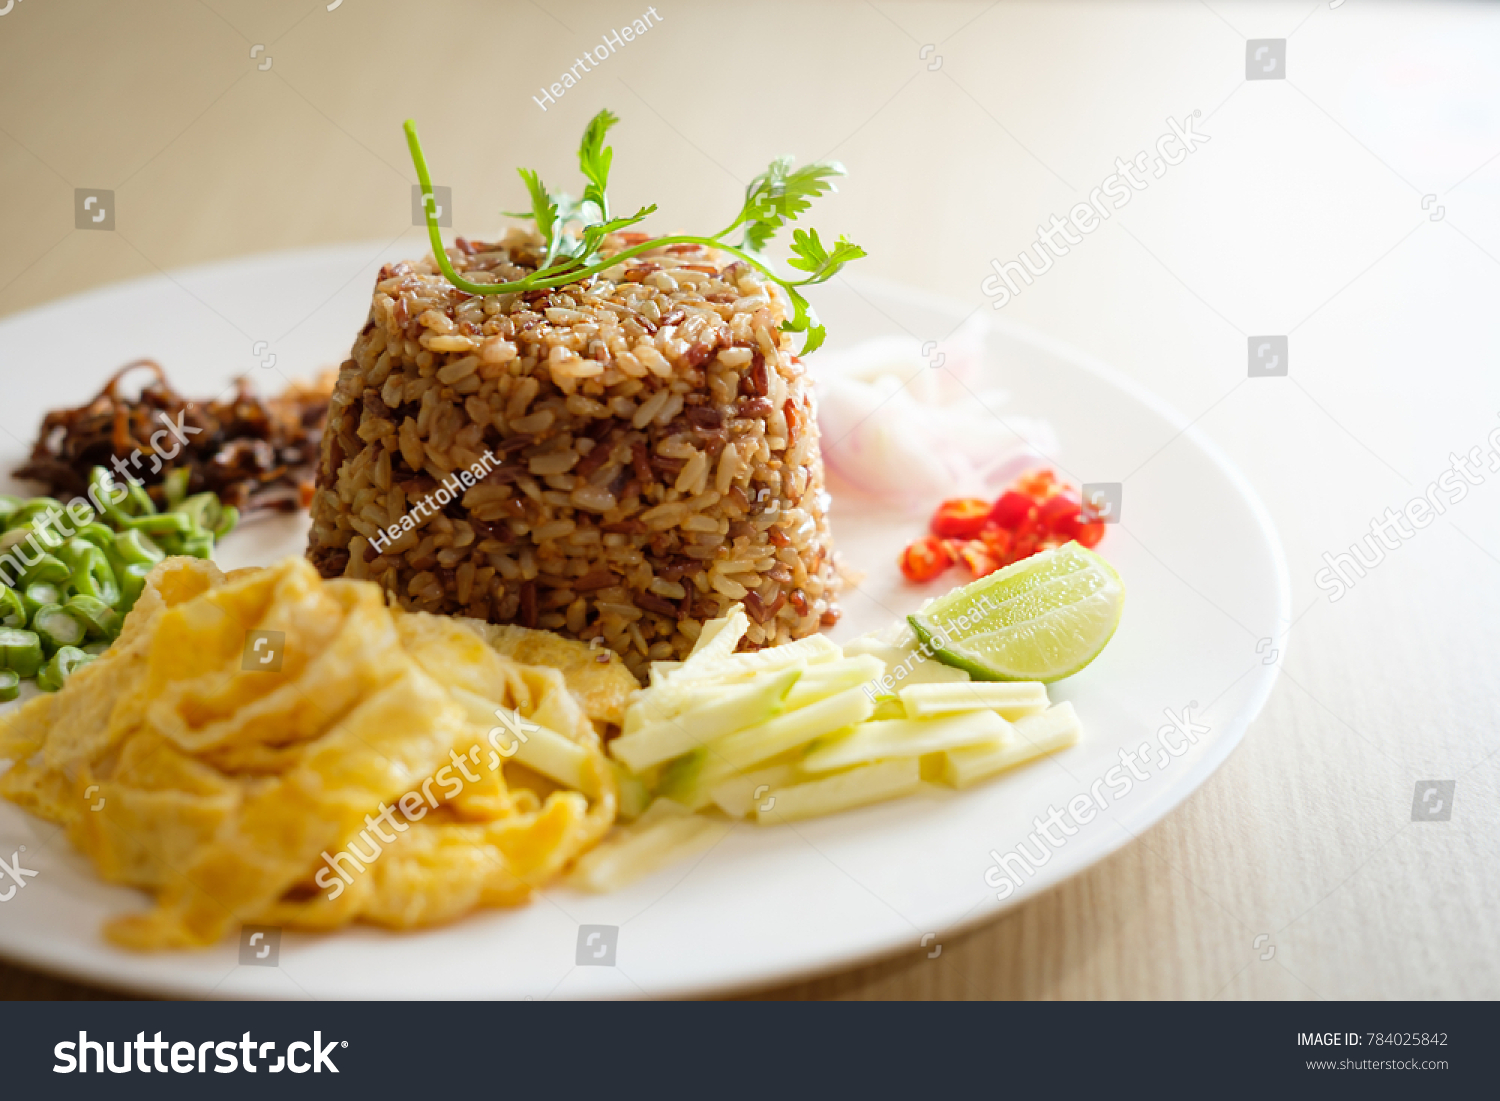 Shrimp Paste Fried Rice This Healthy Food And Drink Stock